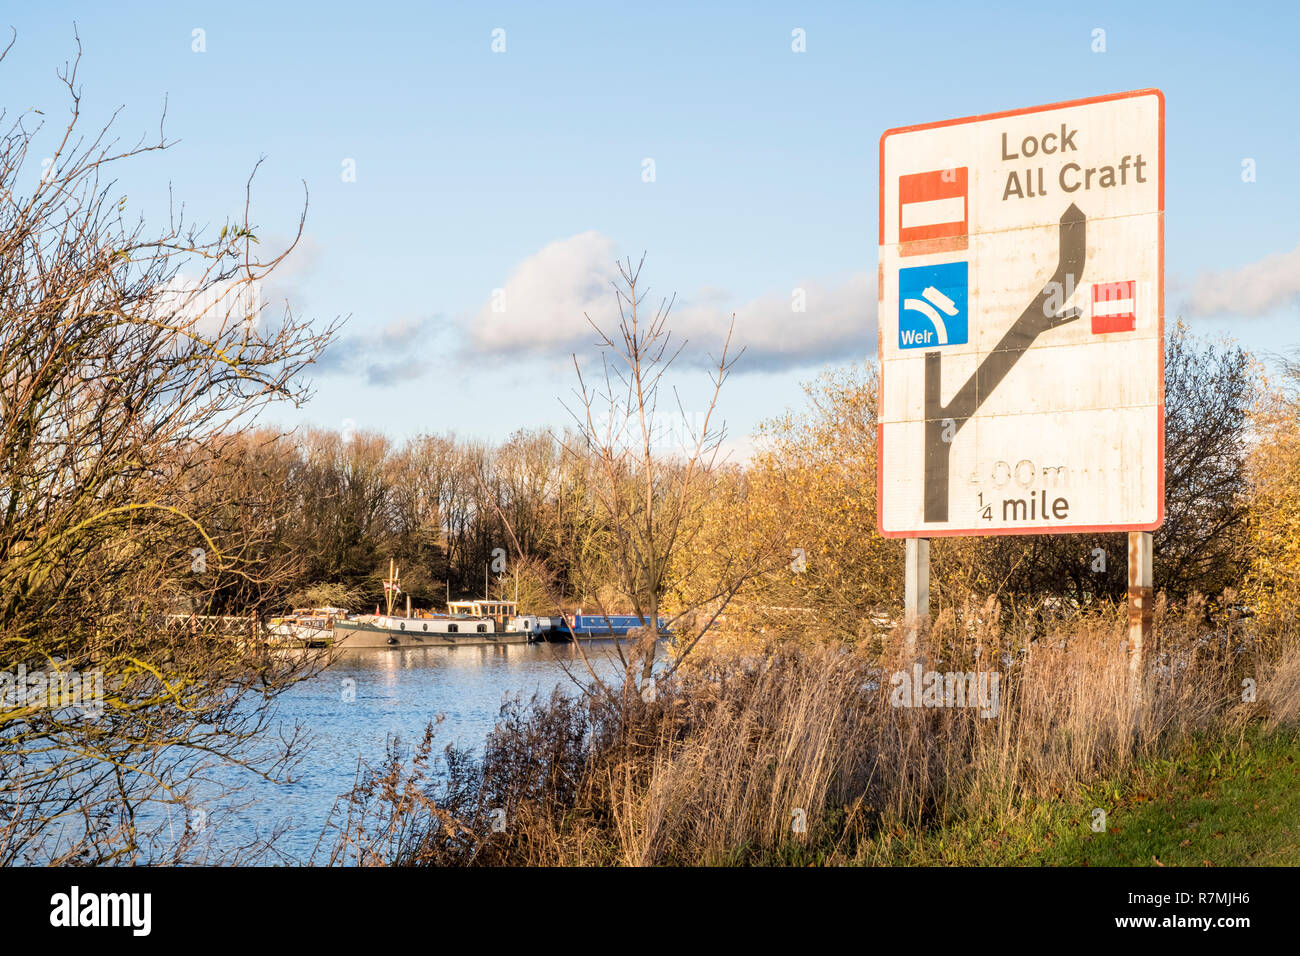 Inland waterway navigation sign showing a lock and weir on the River Trent at Holme Pierpont, Nottinghamshire, England, UK - Stock Image